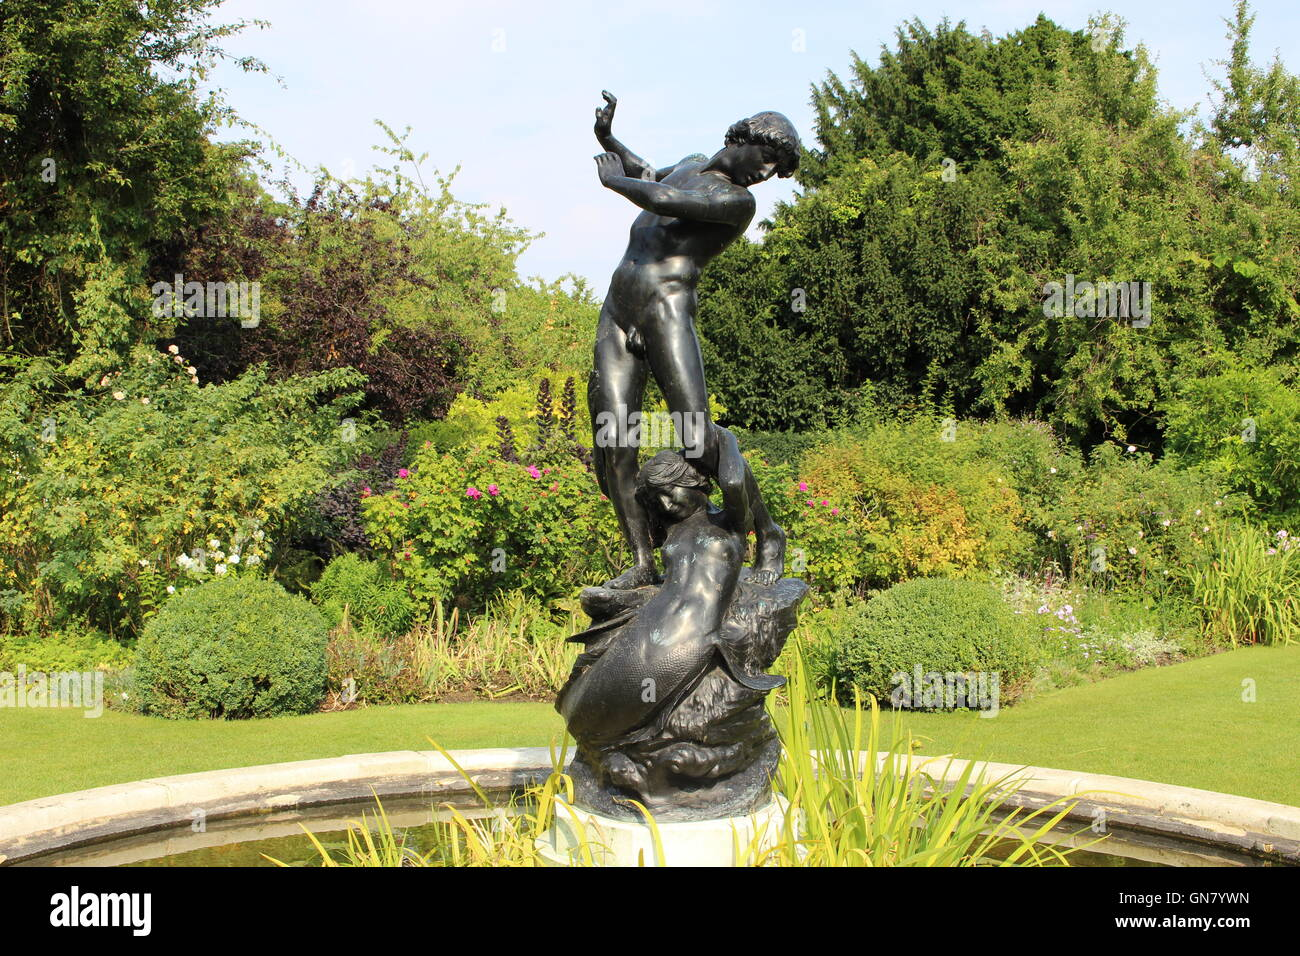 Hylas and the Nymph statue by Henry Pengram in St. John's Lodge Gardens (secret garden) in Regent's Park - Stock Image